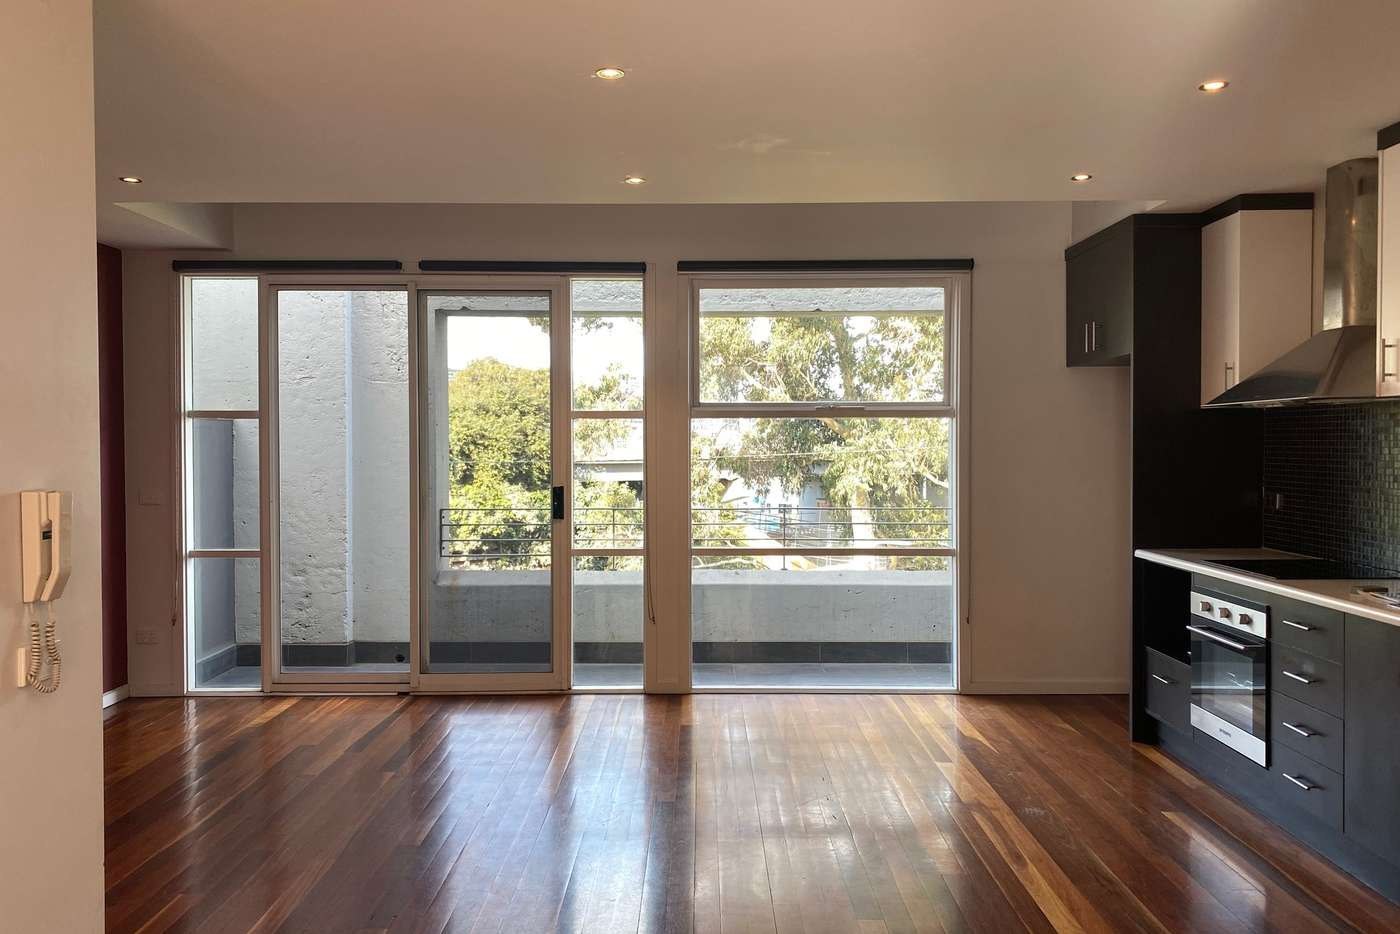 Main view of Homely apartment listing, 12/3-5 Anderson Street, West Melbourne VIC 3003